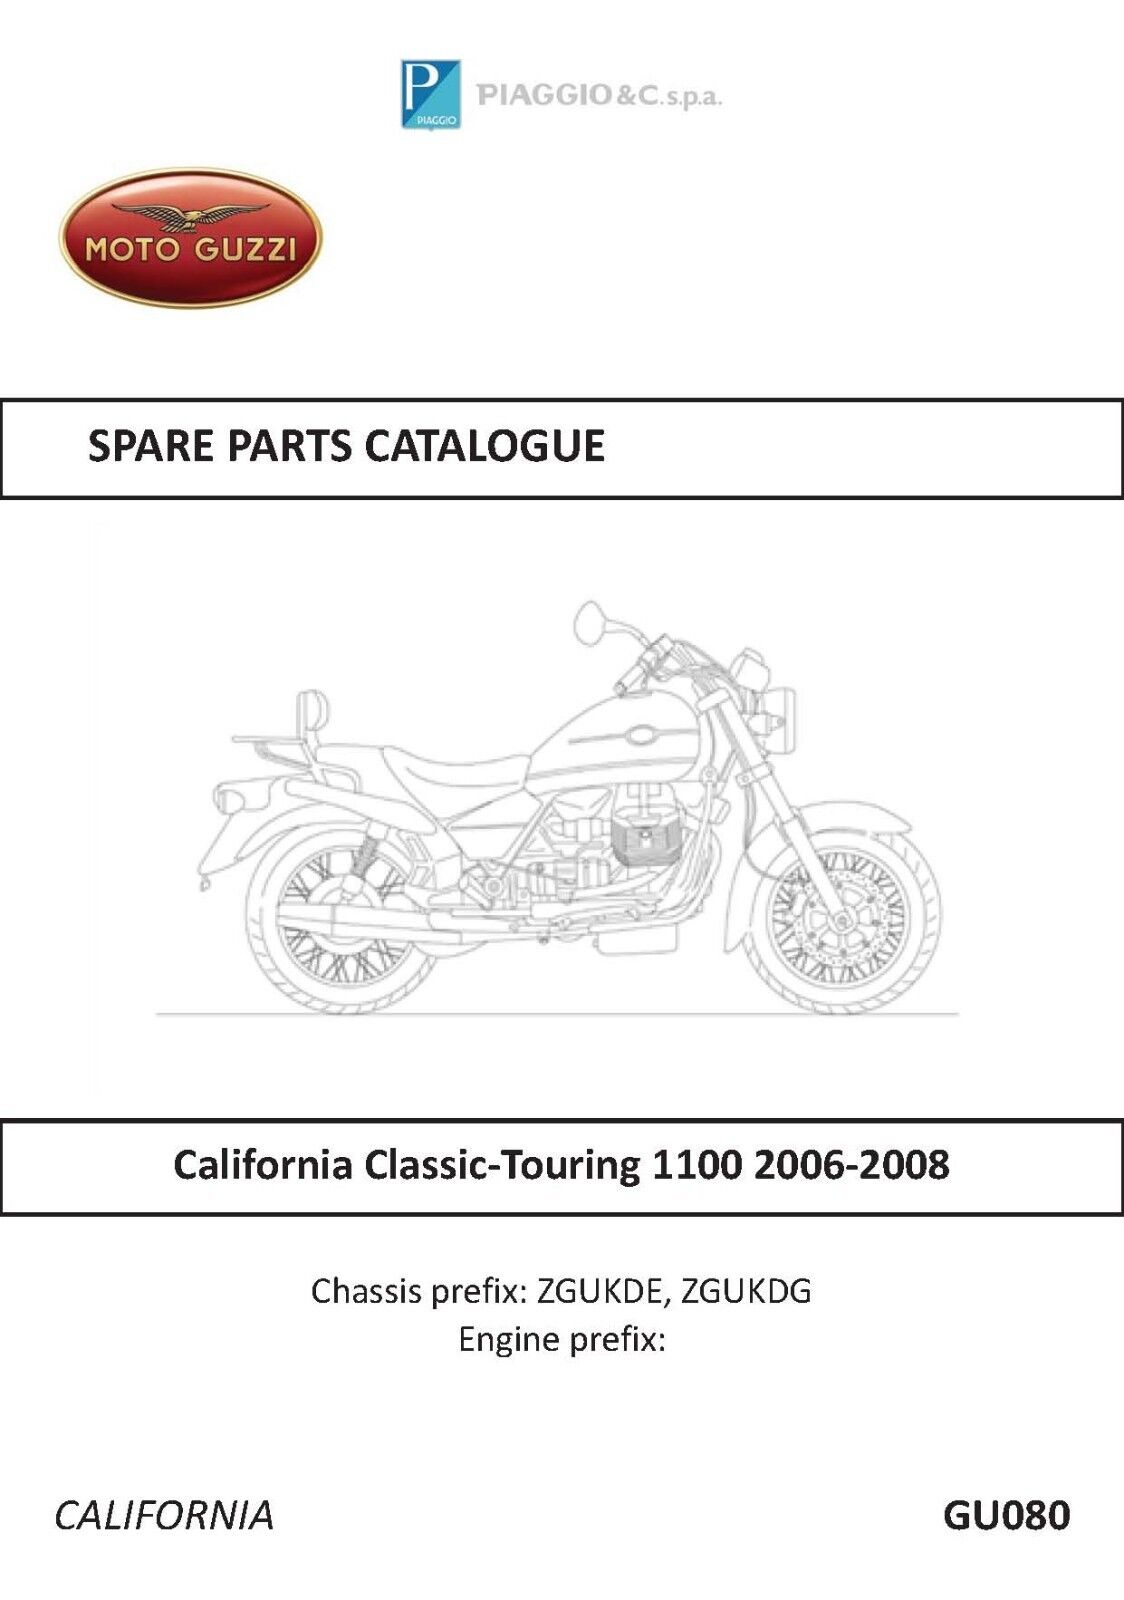 Moto Guzzi Parts Manual Book California Vintage 1100 2006 2007 2008 Motorcycle Engine Diagram Norton Secured Powered By Verisign